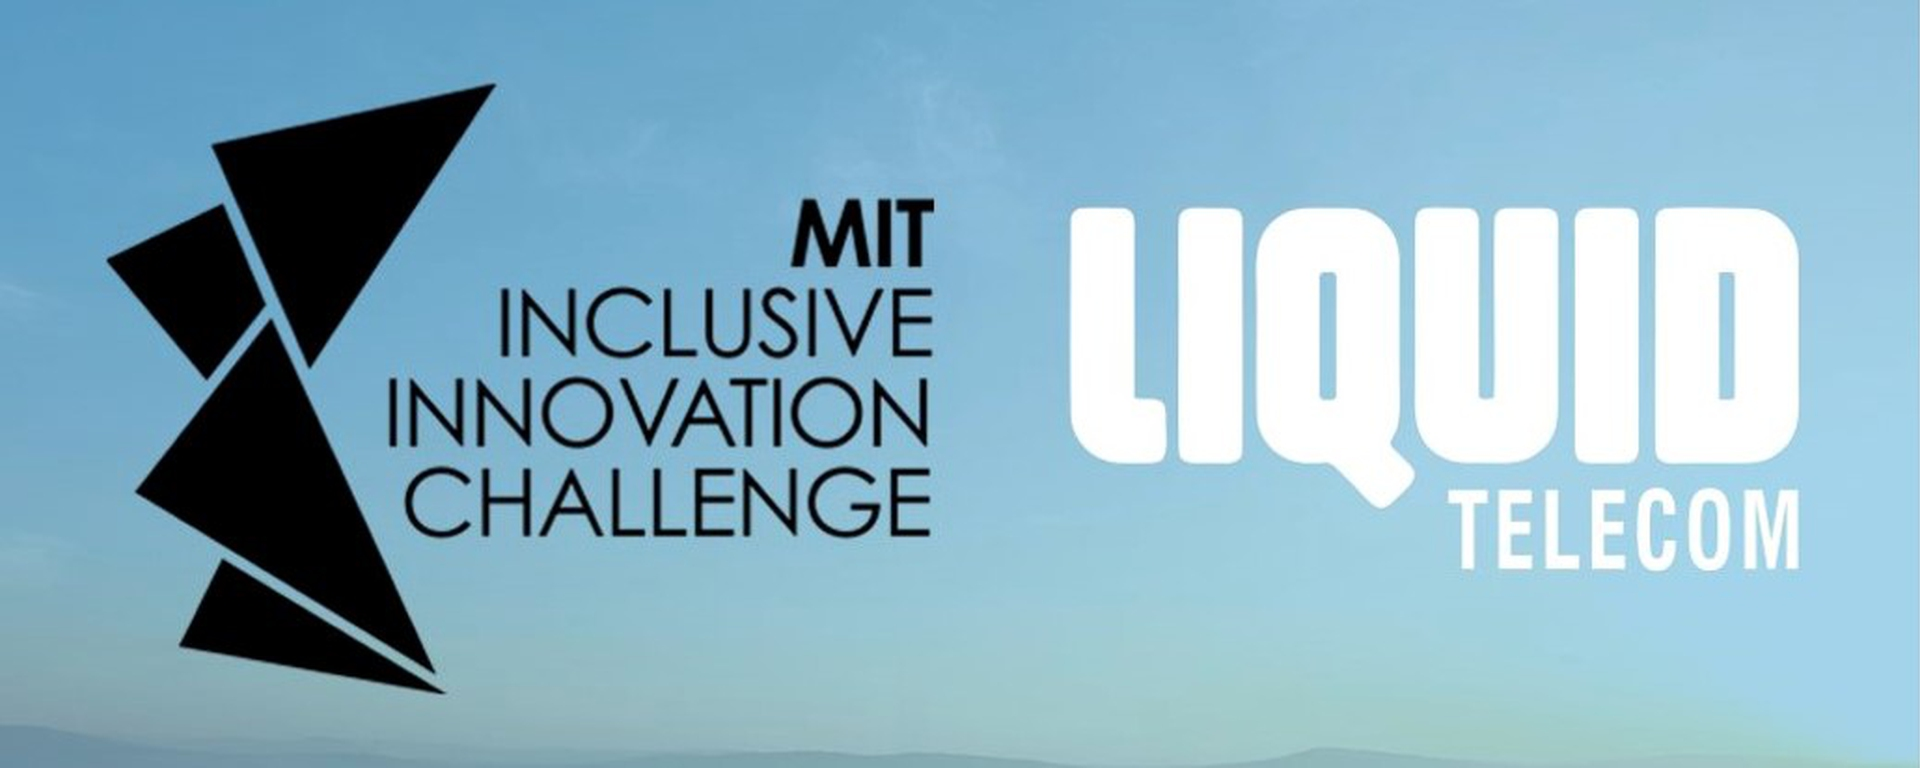 MIT Inclusive Innovation Challenge - African Inclusive Innovation Summit Movemeback African event cover image